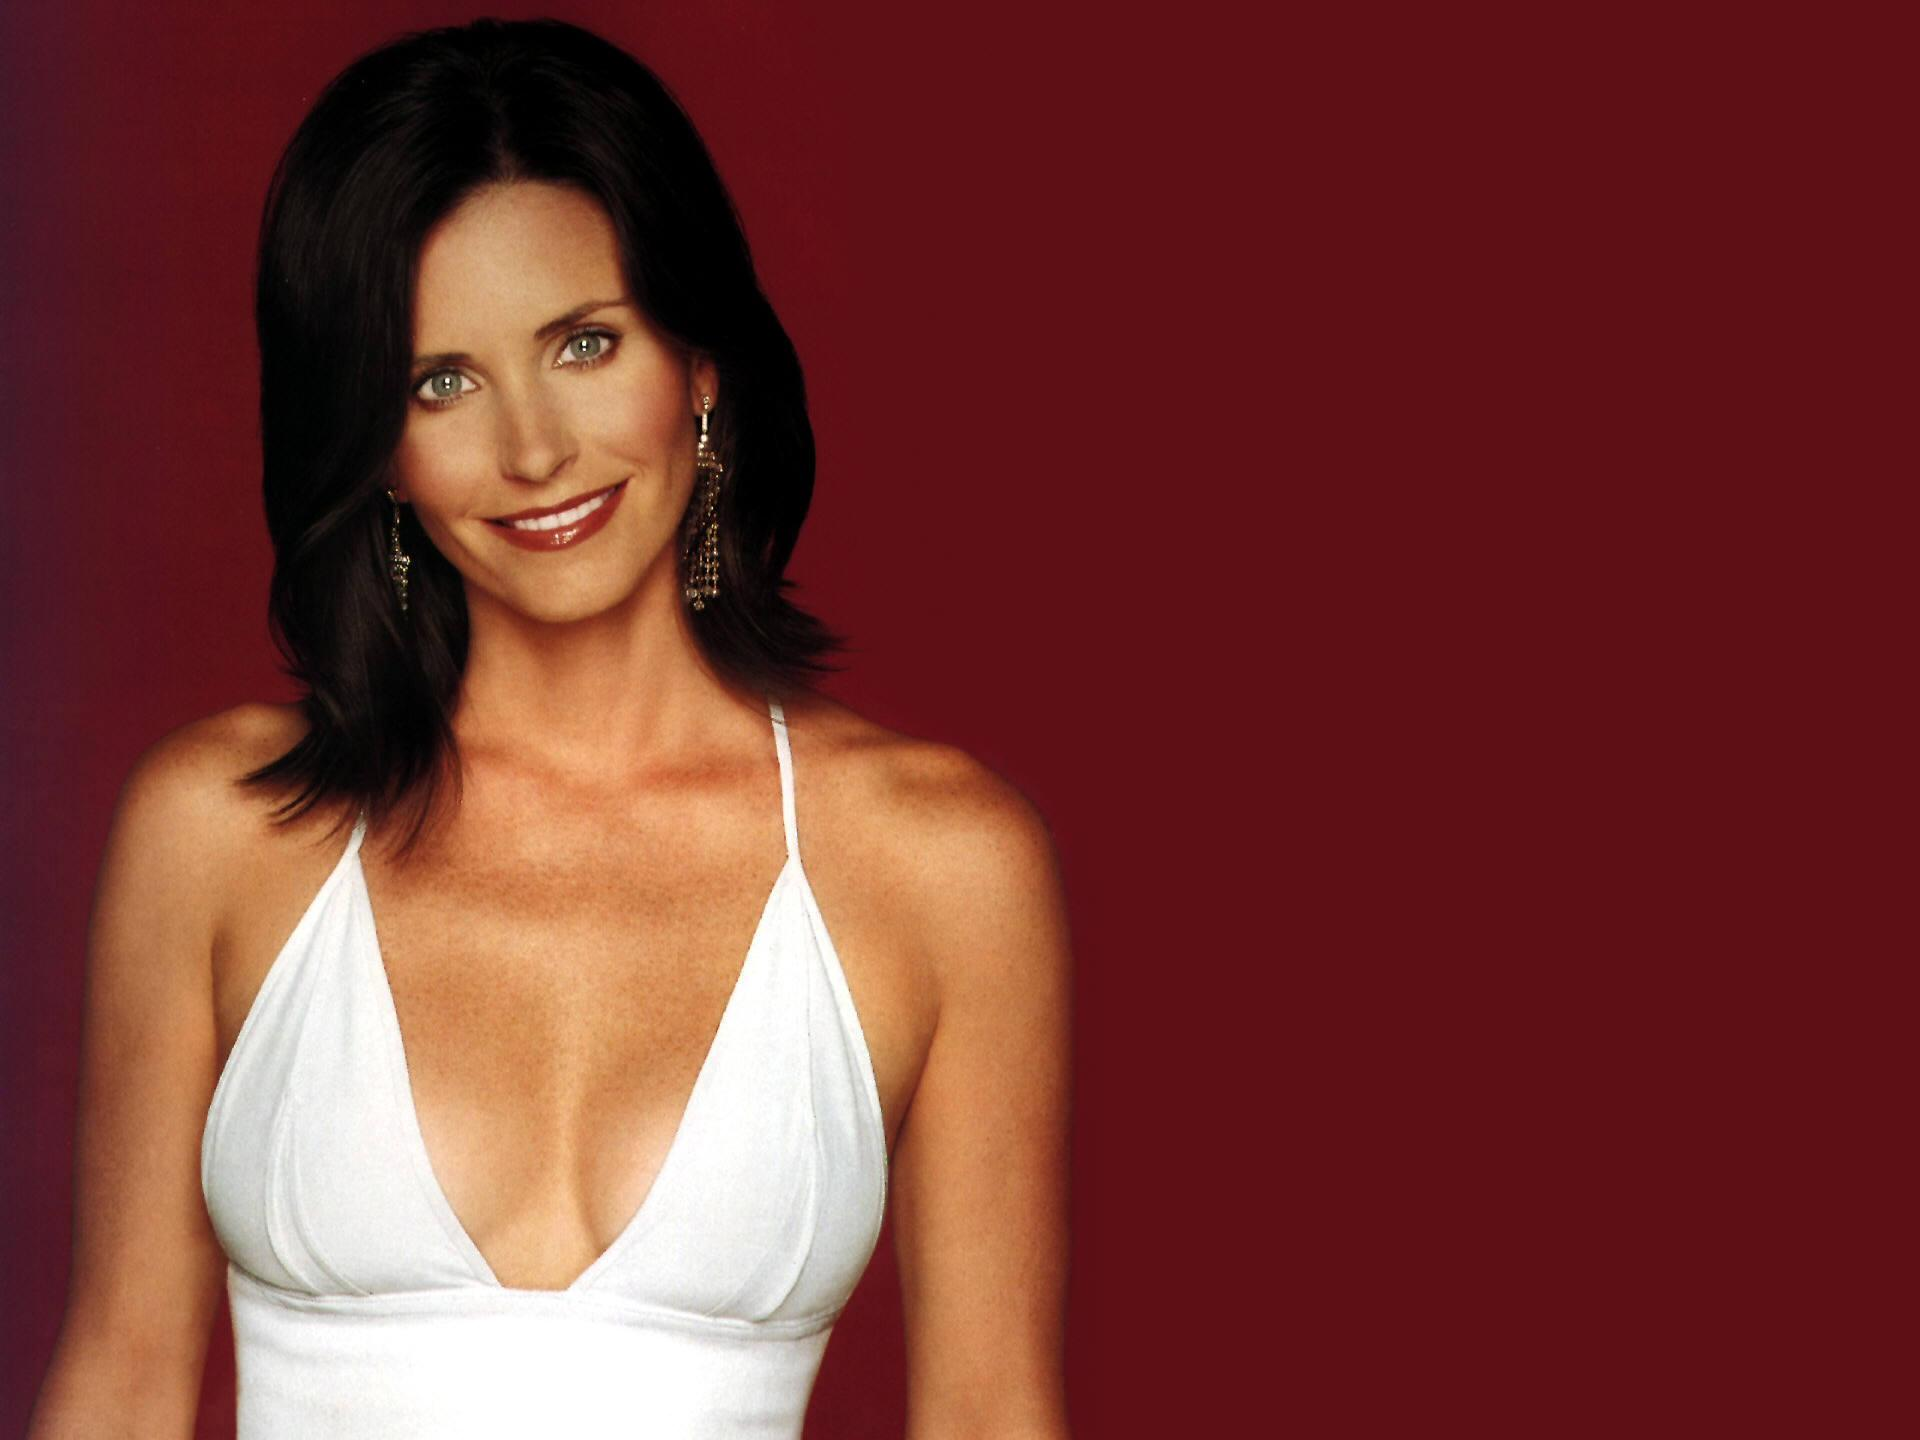 1920x1440 - Courtney Cox Wallpapers 9